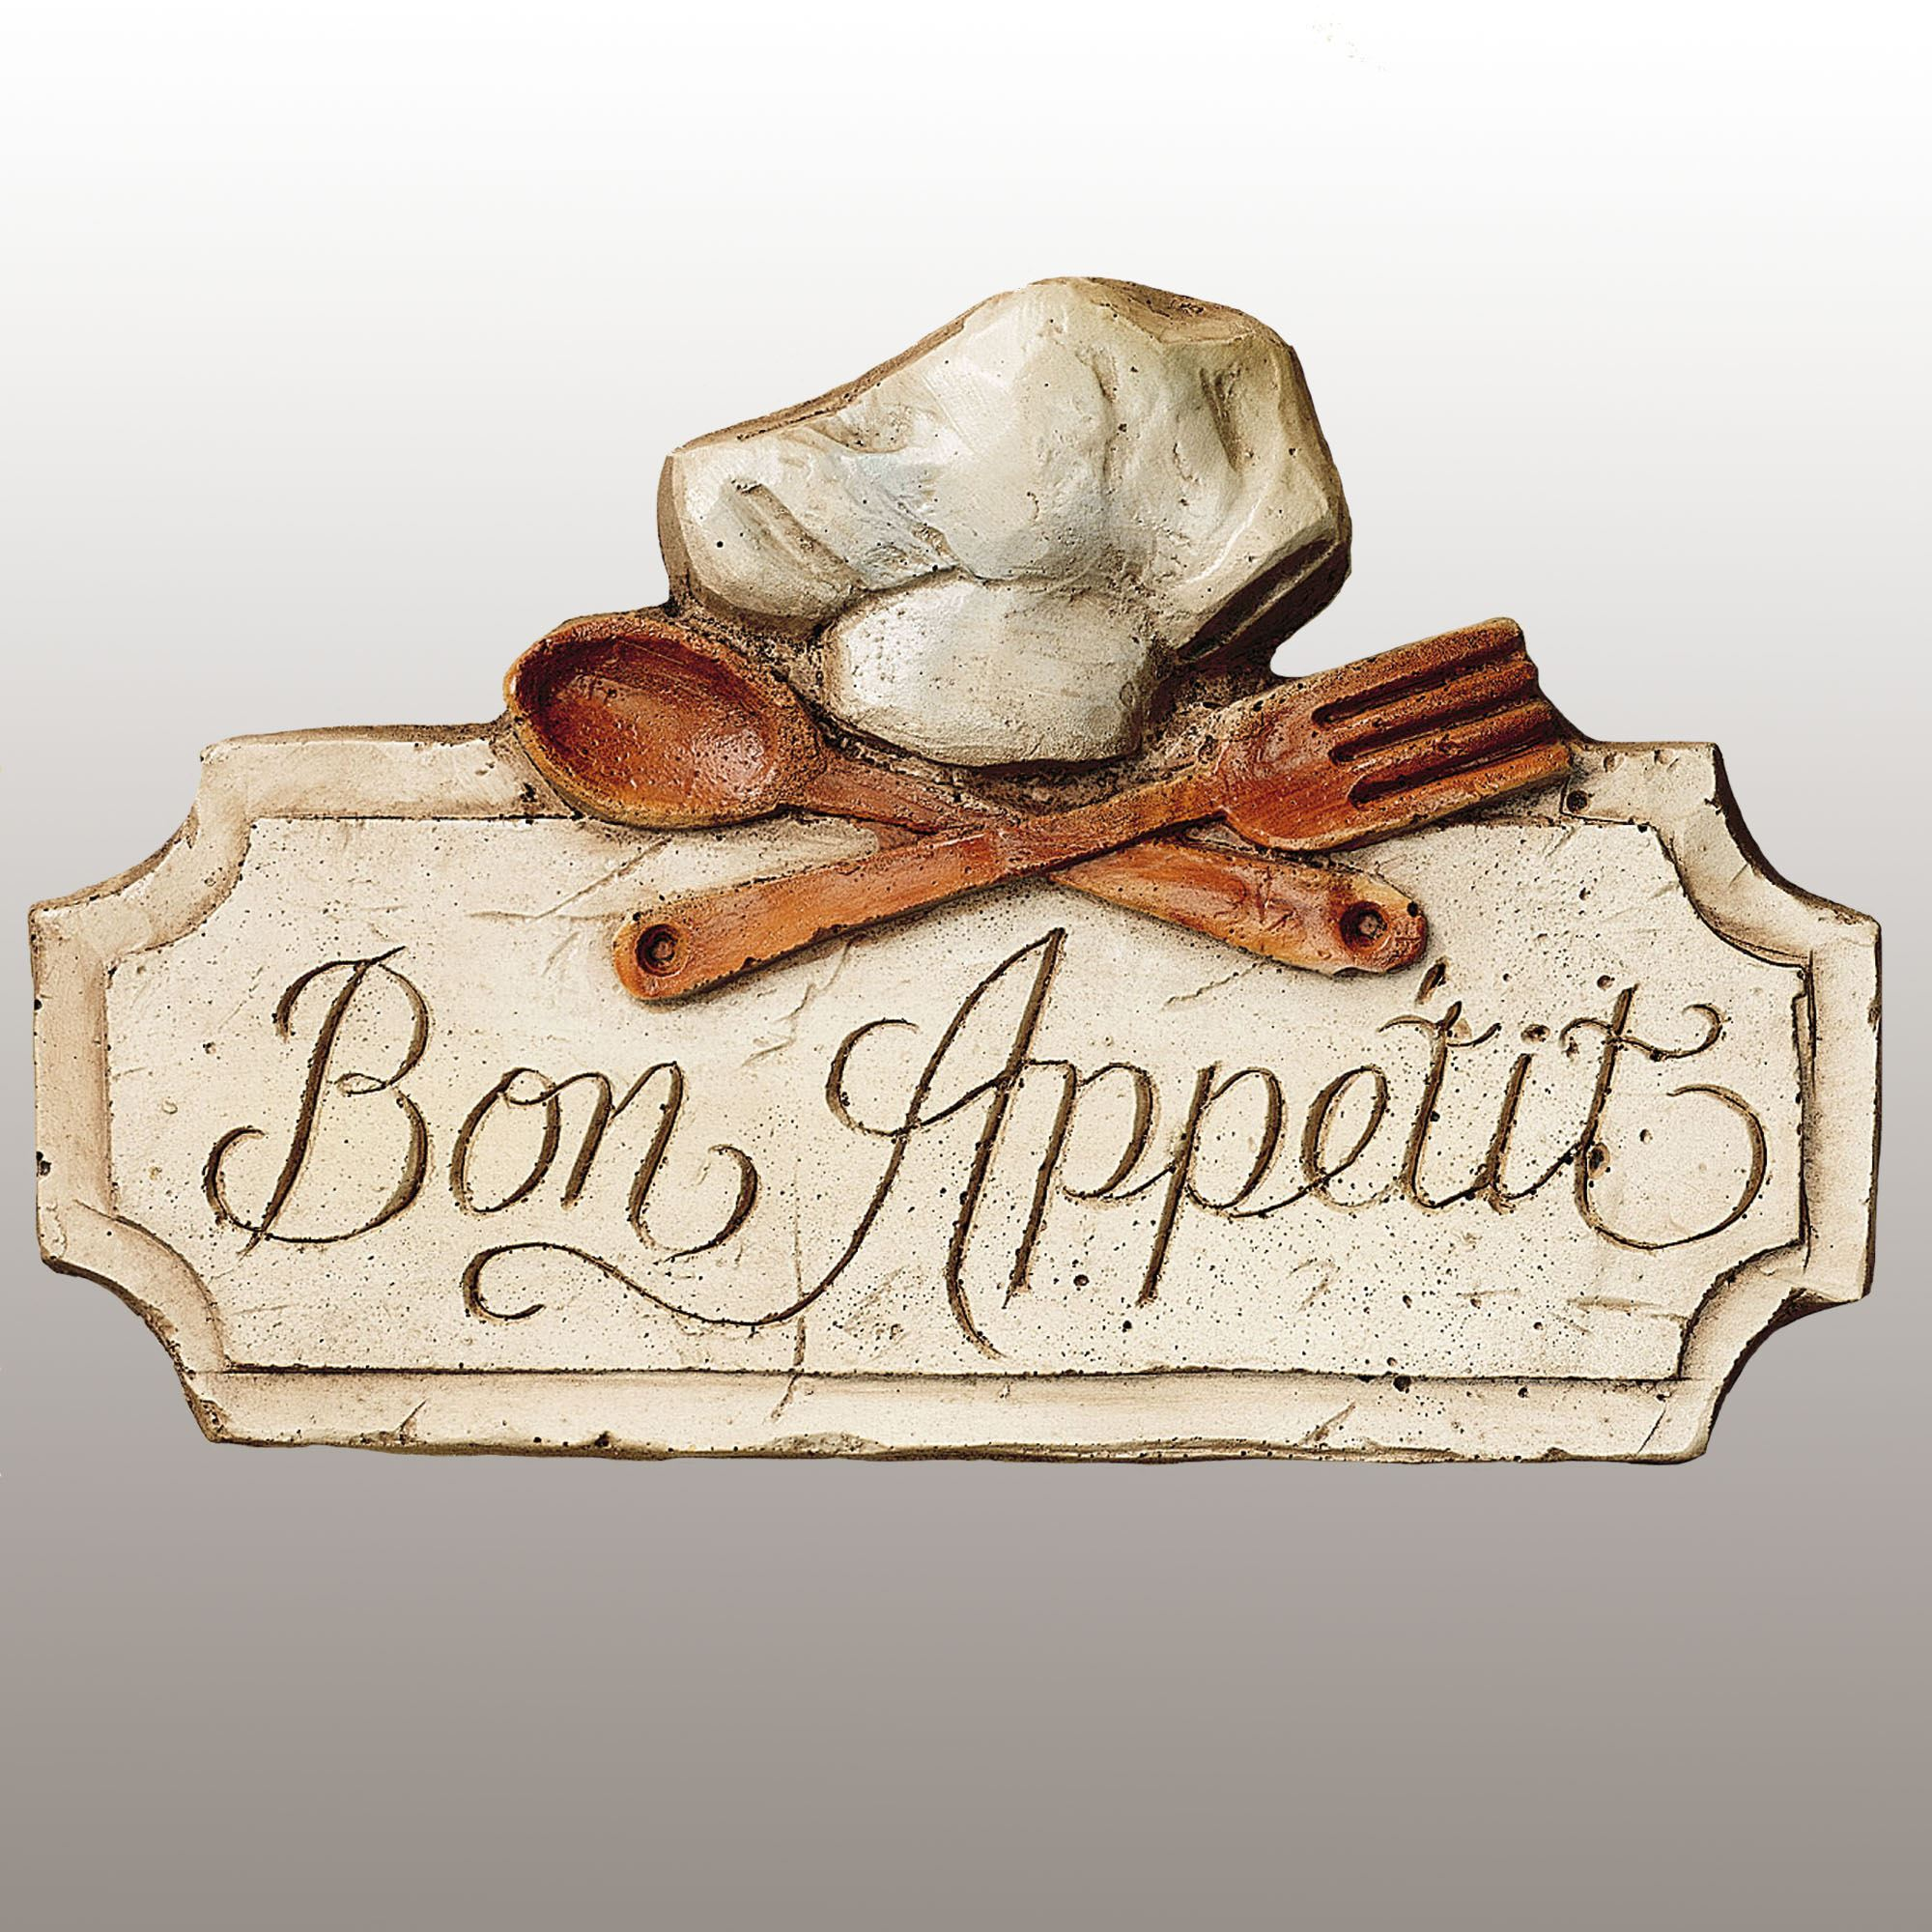 Merveilleux Bon Appetit Kitchen Wall Plaque. Touch To Zoom